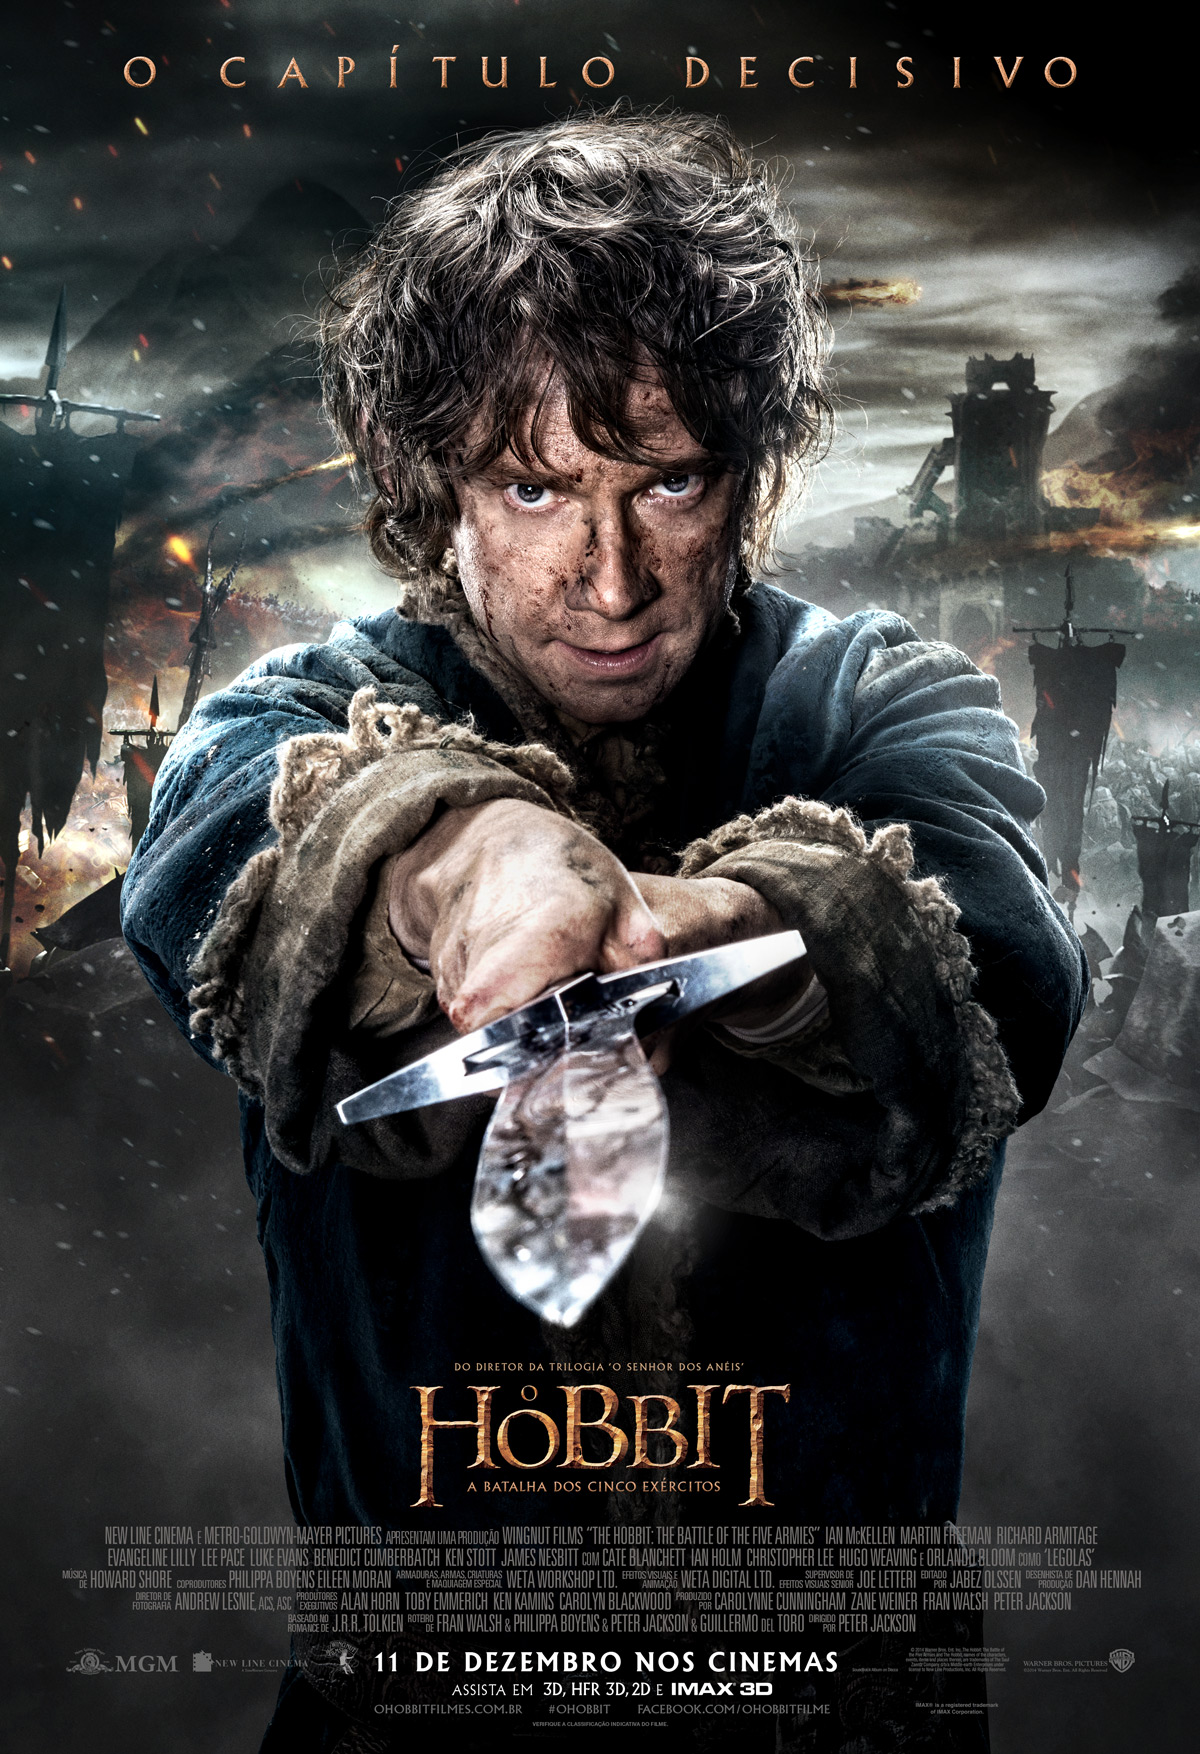 The Hobbit The Battle of the Five Armies-Official brasil POSTER-14NOVEMBRO2014-02